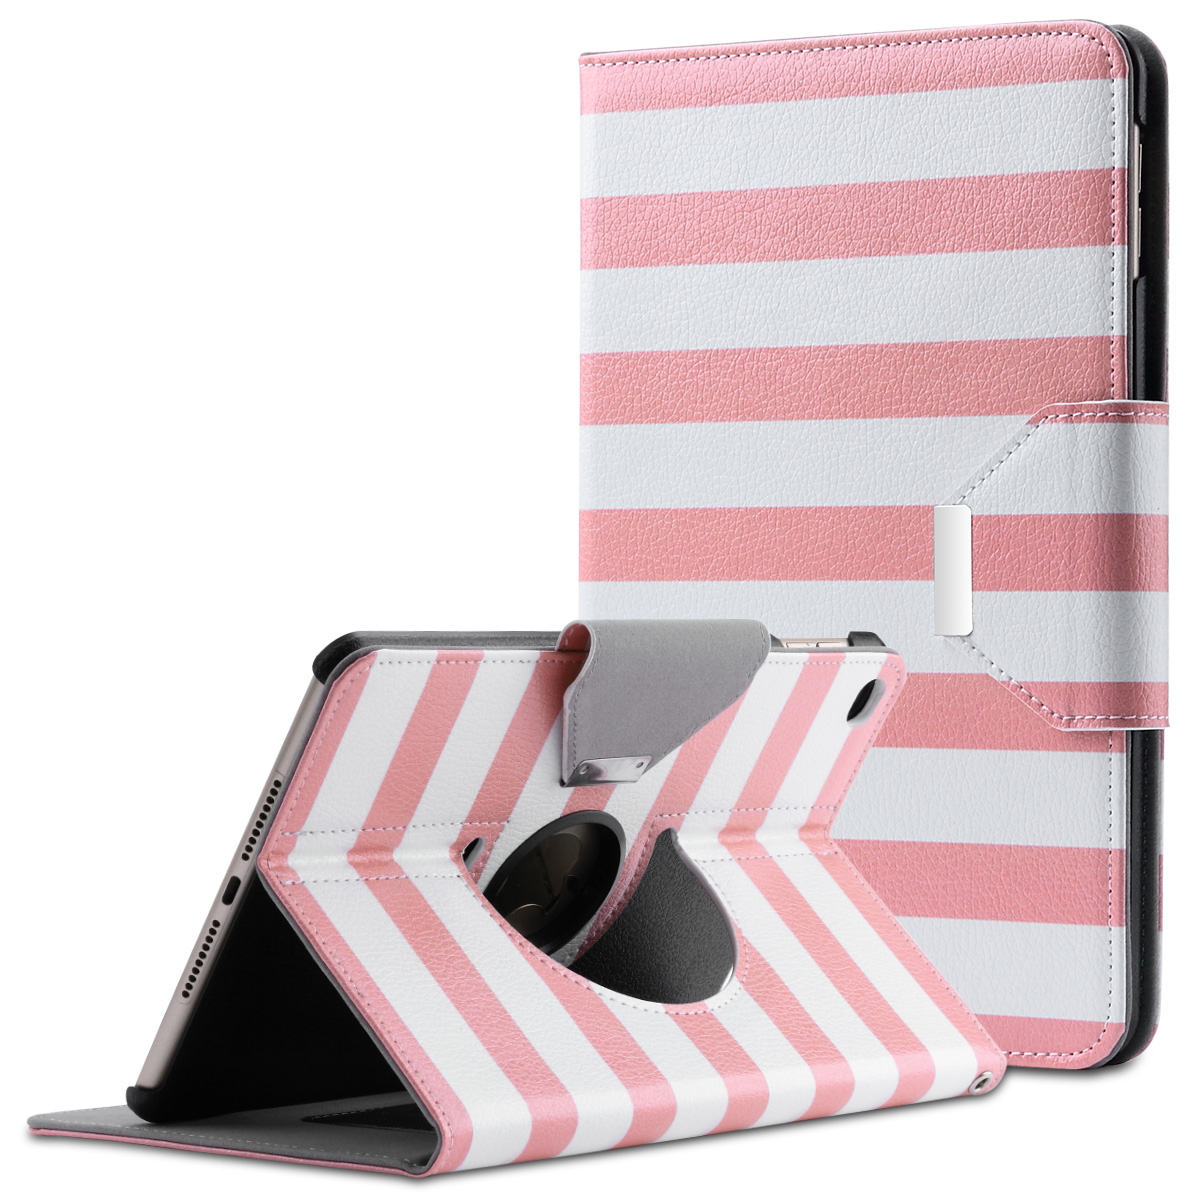 iPad Mini 4 Case, ULAK 360 Degree Rotating Magnetic PU Leather Case Smart Stand Cover for Apple iPad Mini 4 (2015 Release) with Auto Sleep & Wake up Features ( Follow the sky)